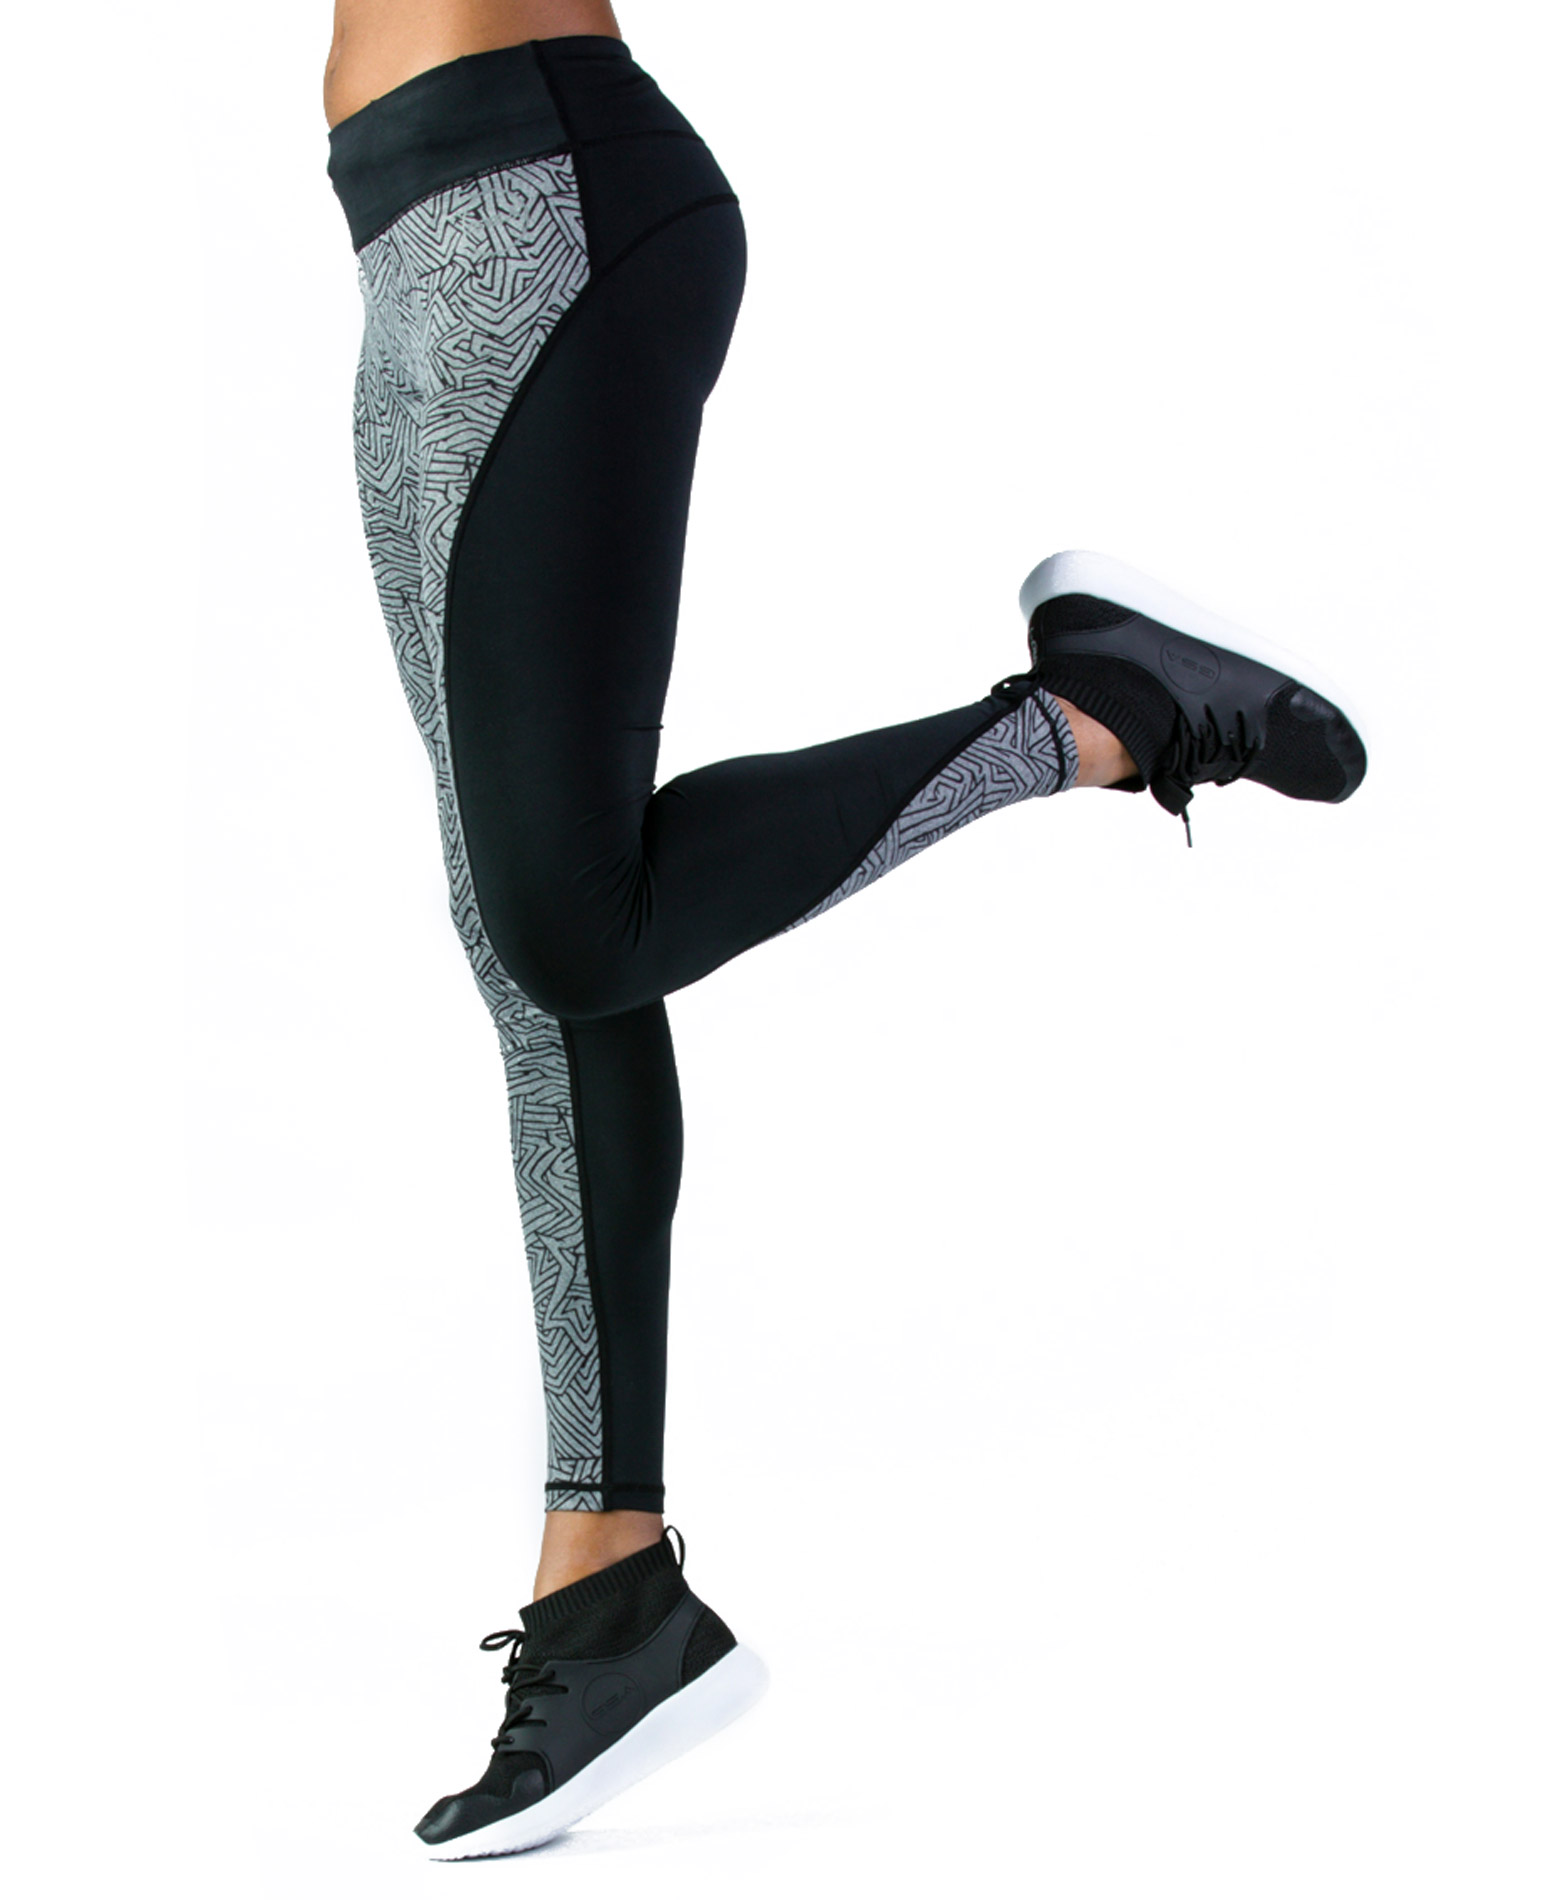 GSA HYDRO SUBLIMATION PERFORMANCE LEGGINGS 17-27028-CHARCOAL Ανθρακί